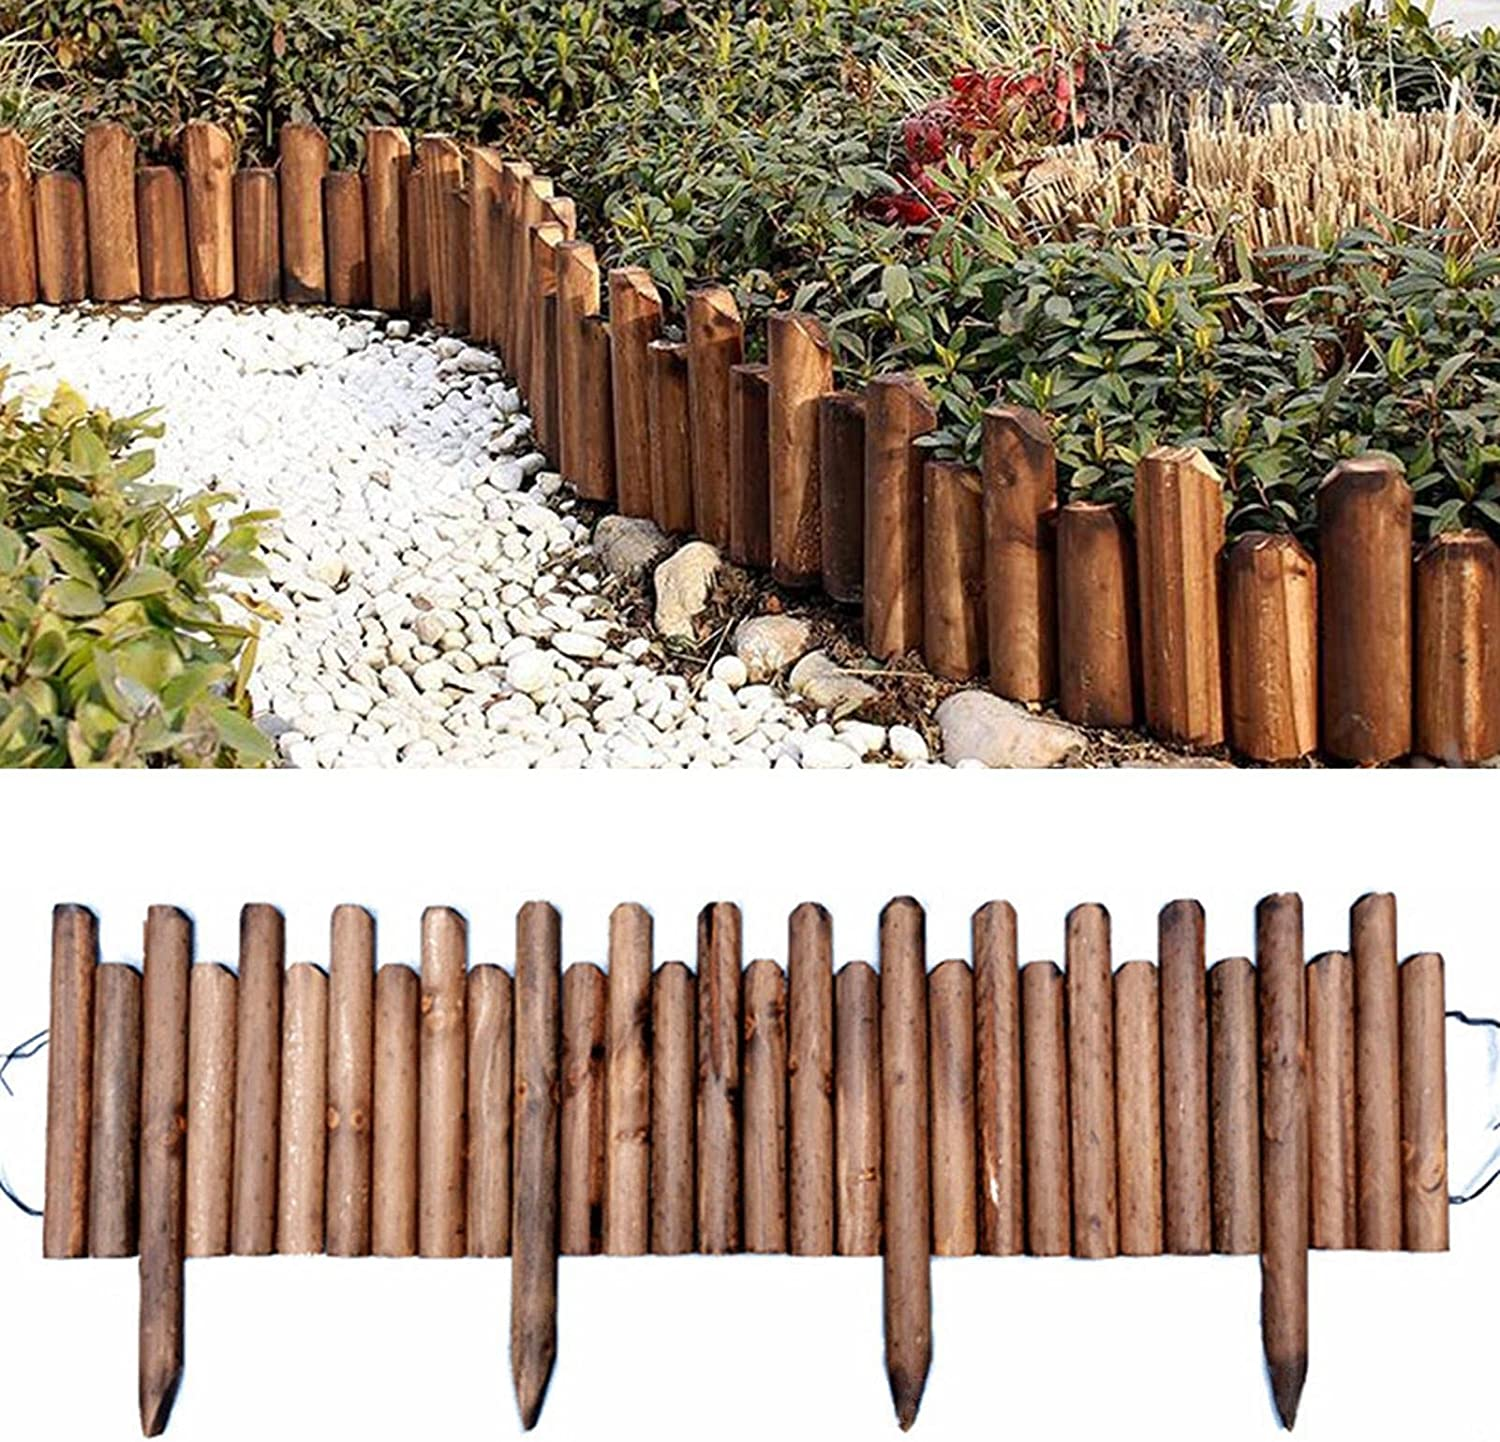 Ming Chen Wood Picket Garden Fence, Lawn Spiked Log Roll Border Easy Plug-in Fence Palisade Corrosion Resistant Wooden Edging for Flower Beds Lawns Paths,Edging Fencing for Outdoors Palisade